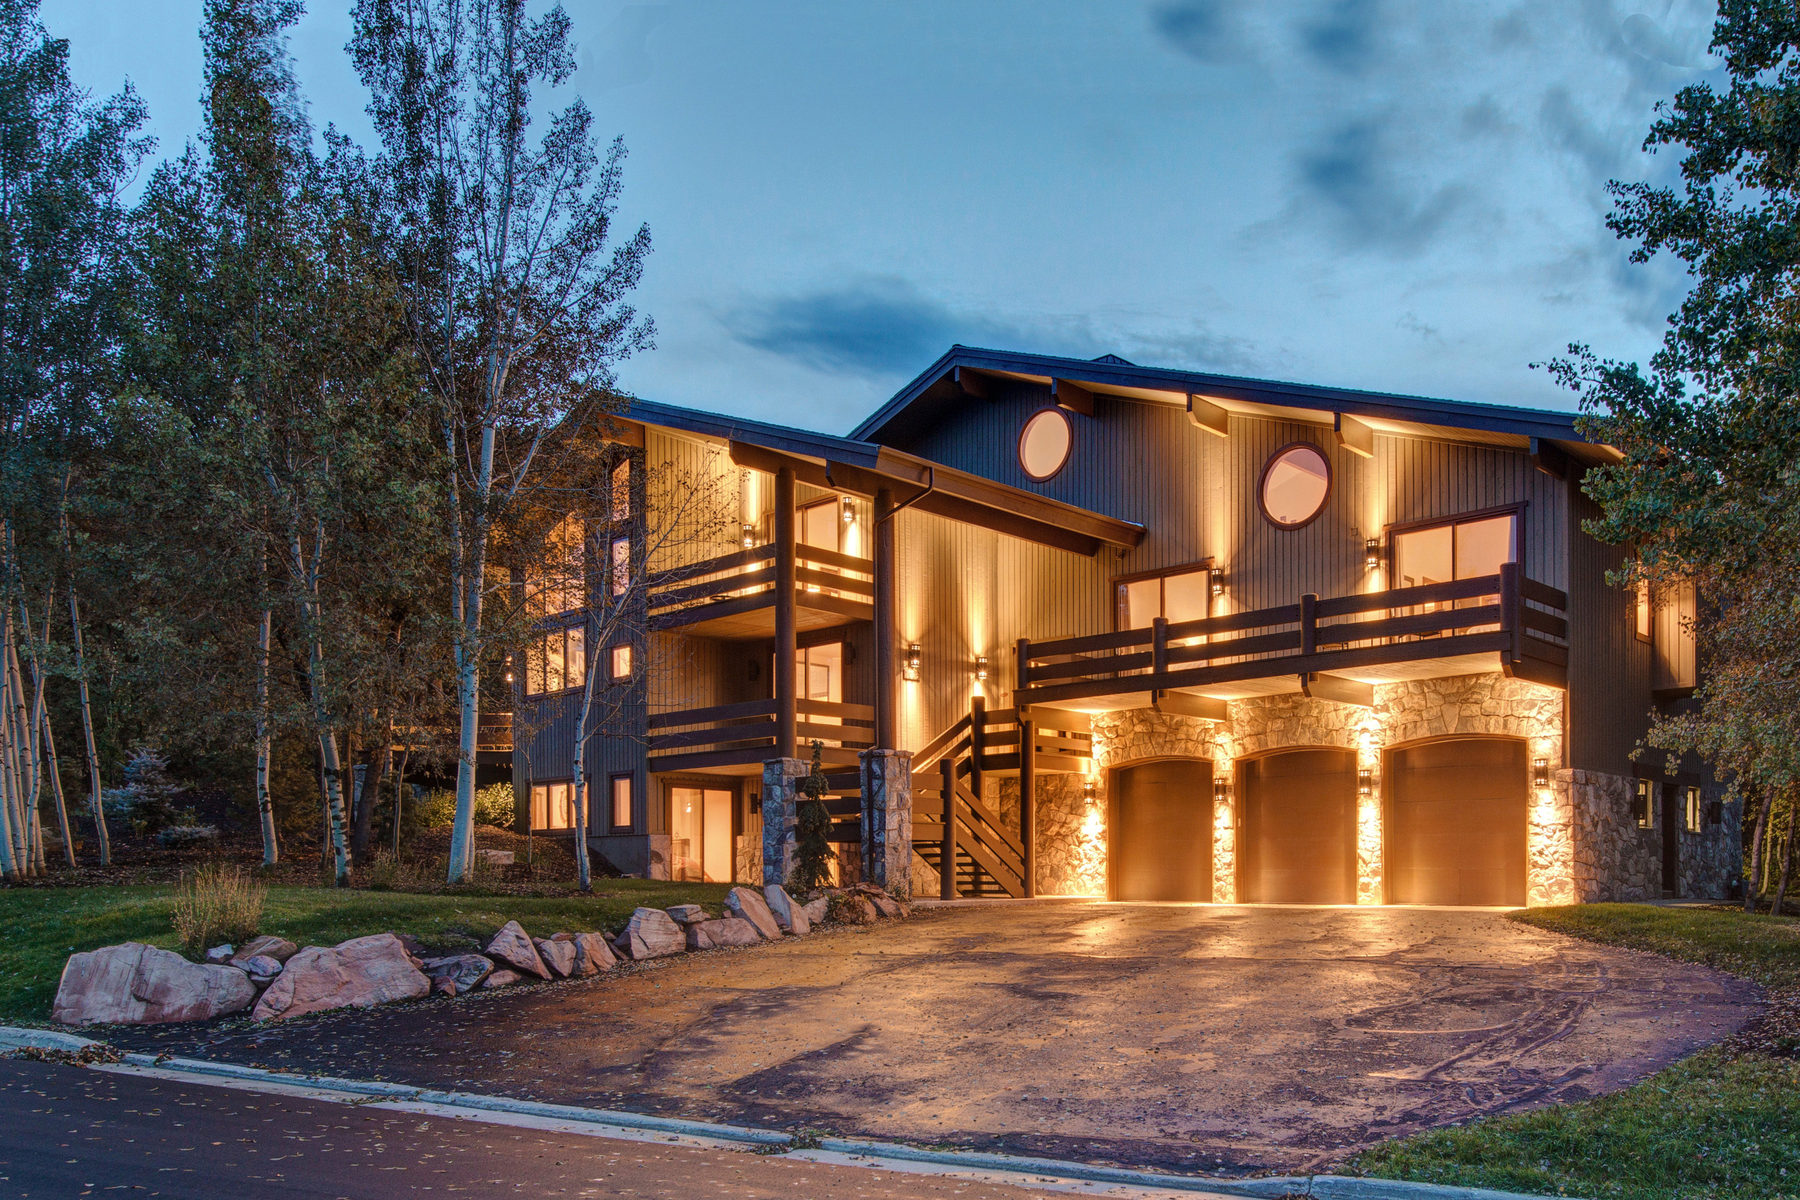 Single Family Home for Sale at One Of A Kind Home In Pinebrook 7093 Pinecrest Dr Park City, Utah 84098 United States